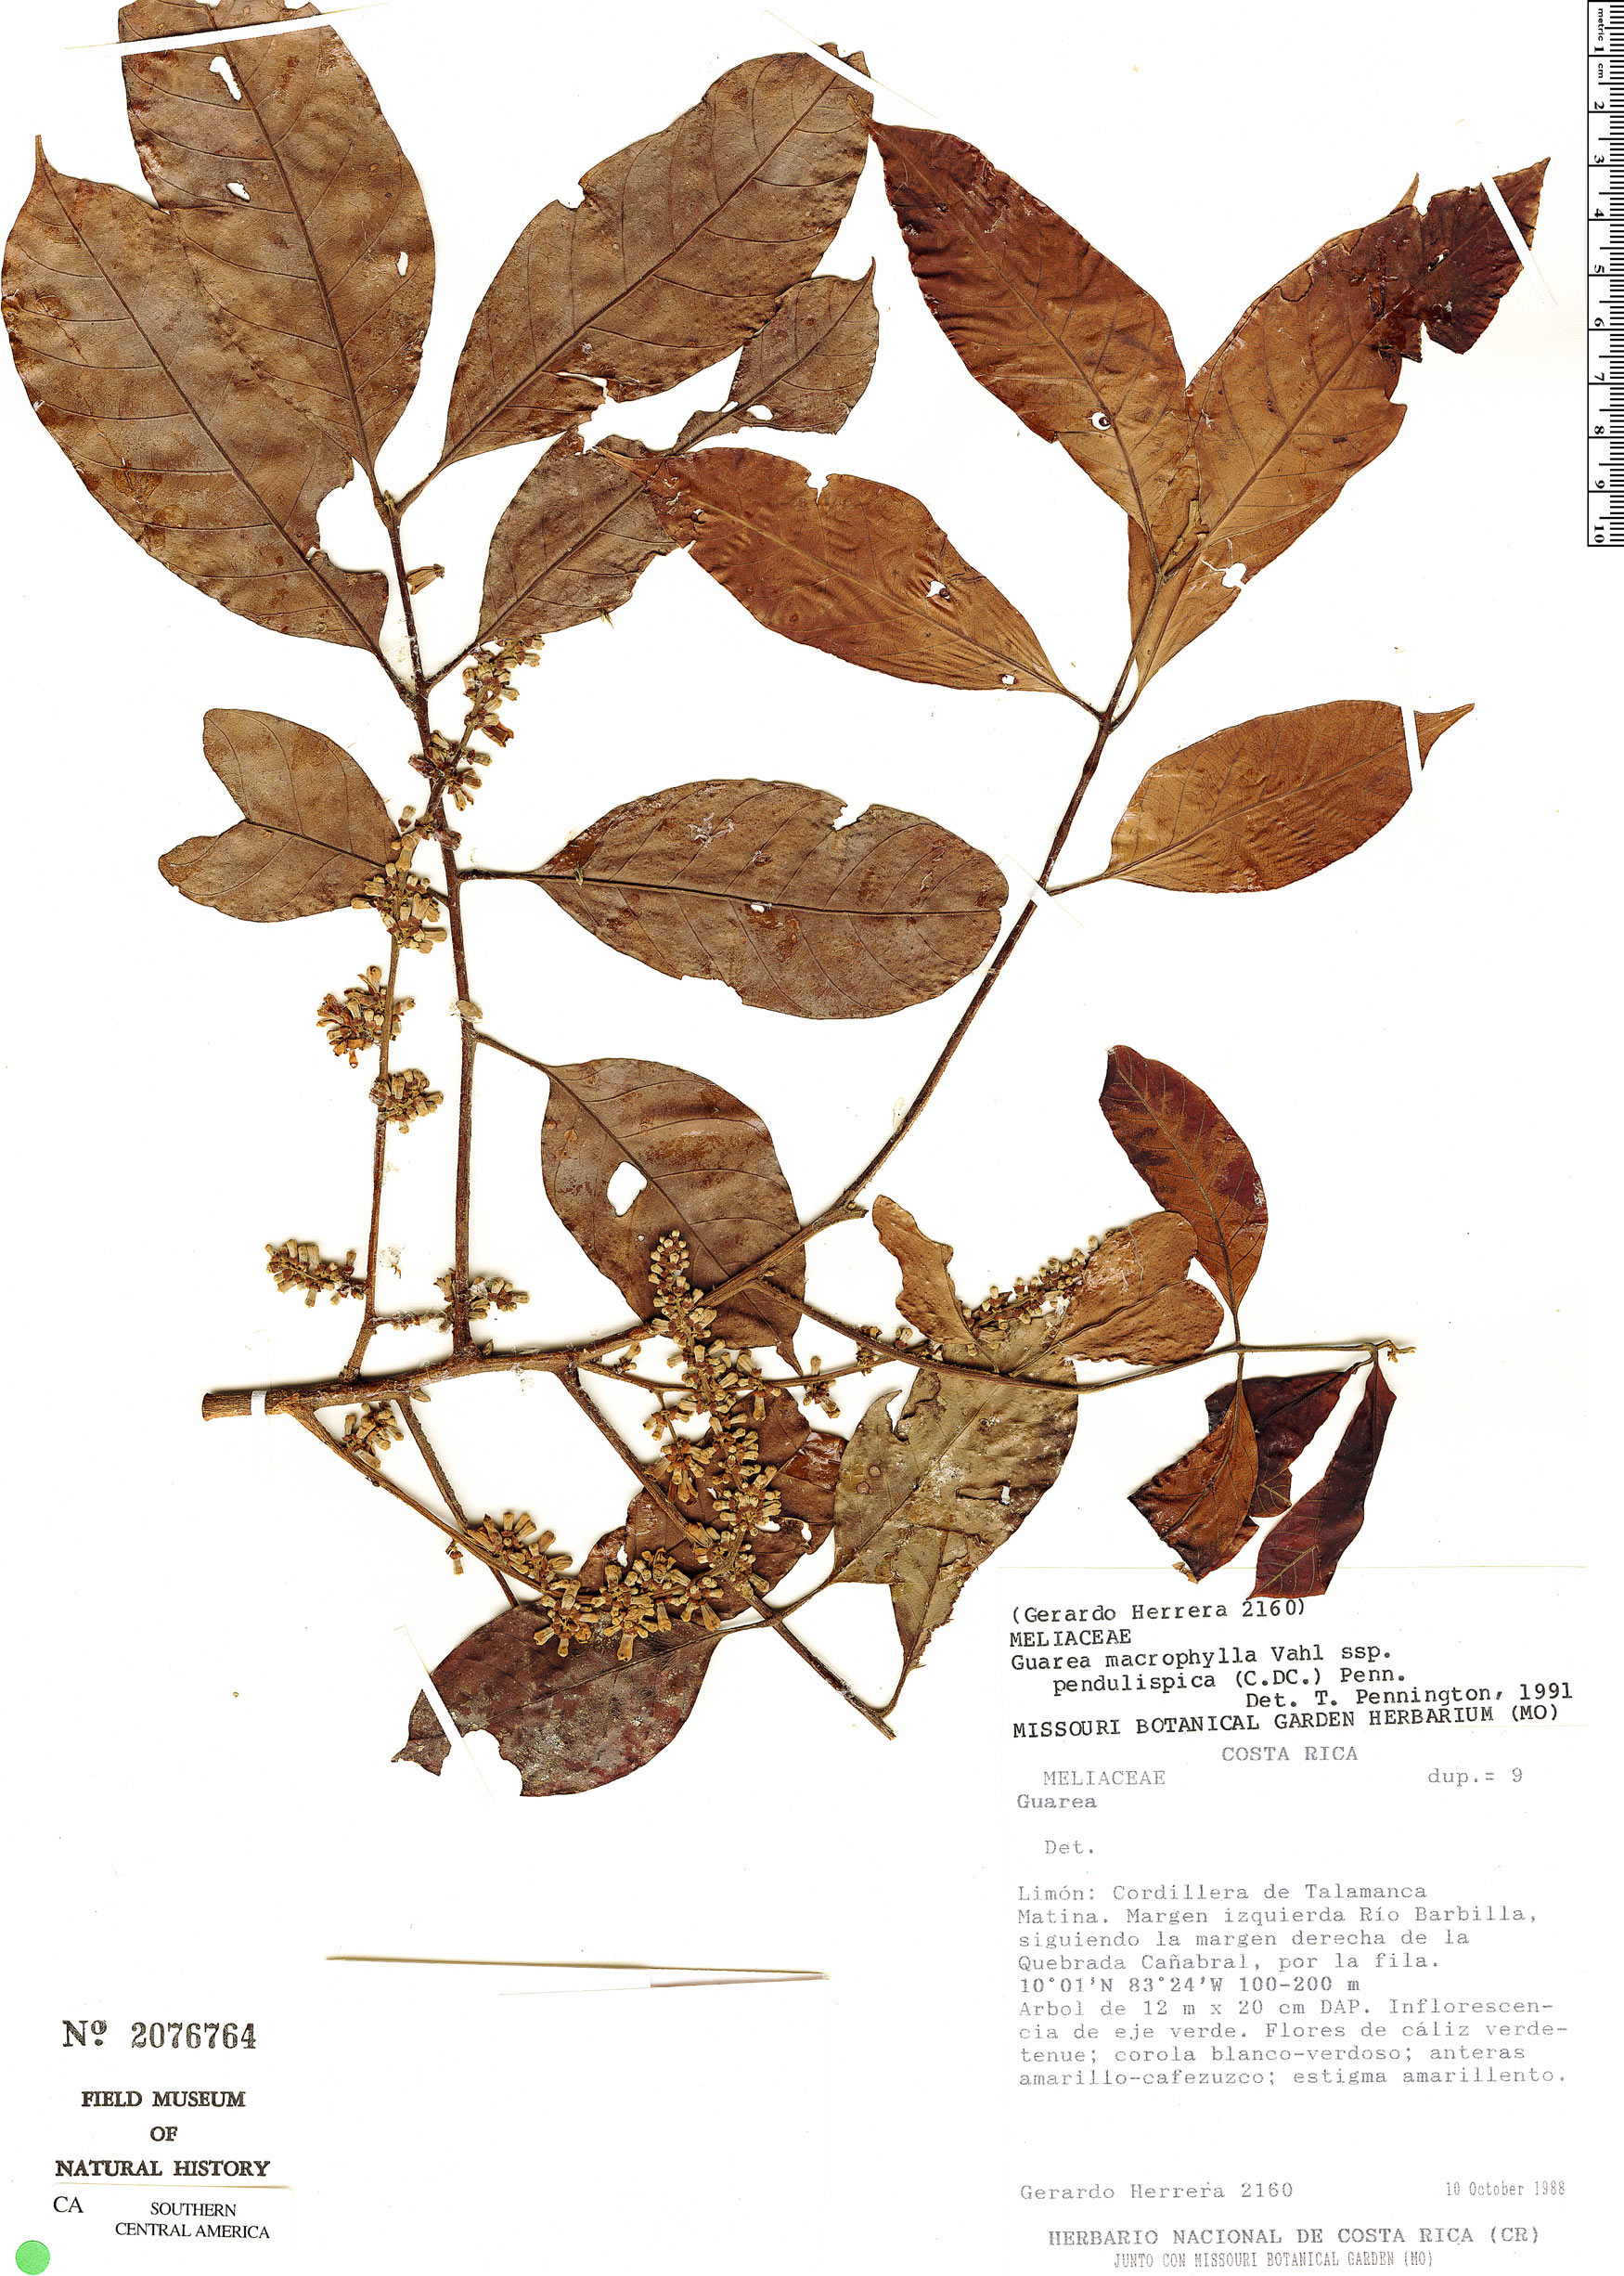 Specimen: Guarea guidonia